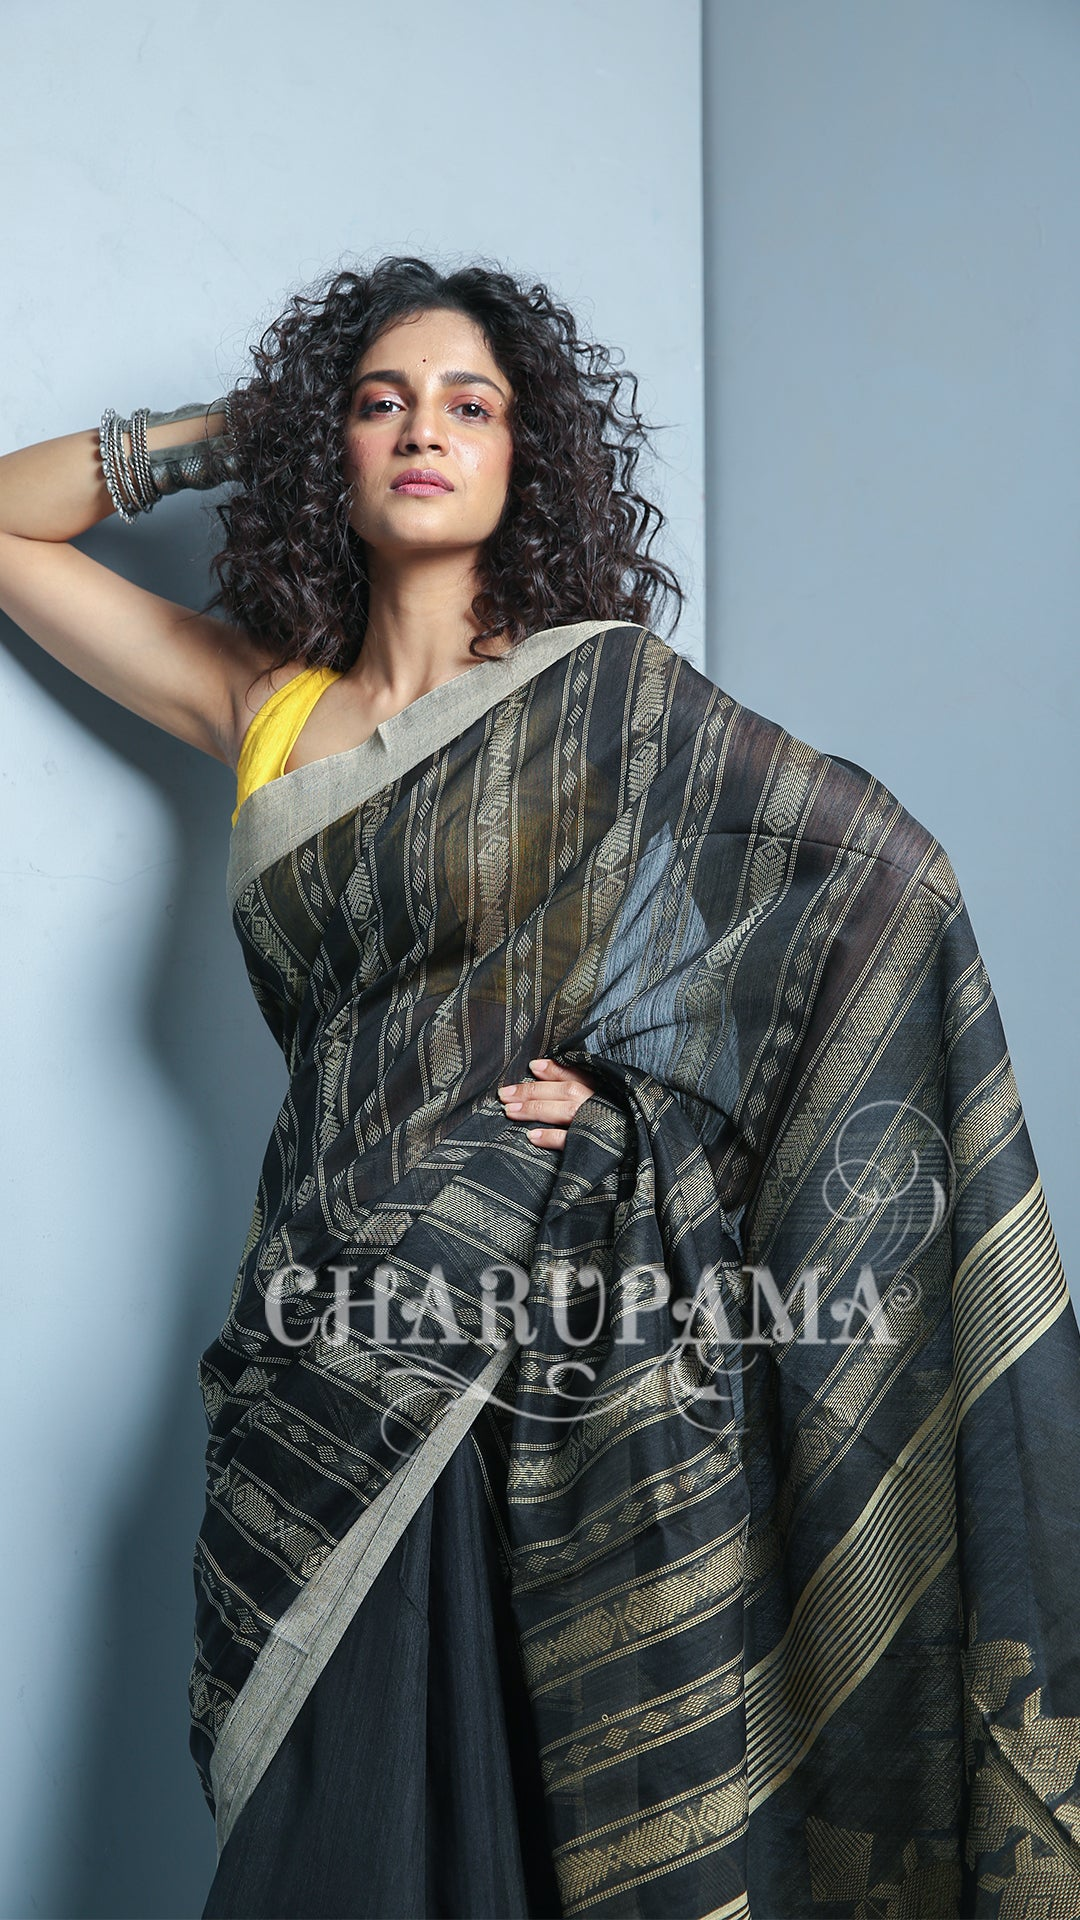 Color Beige Is Neutral, Calm, And Relaxing And With Black Combination This Saree Represents Warm Color With A Cool Color. This Handwoven Blended Cotton Saree Is Great Pick For Summer And Autumn Season, Best For Wedding Events - Charupama